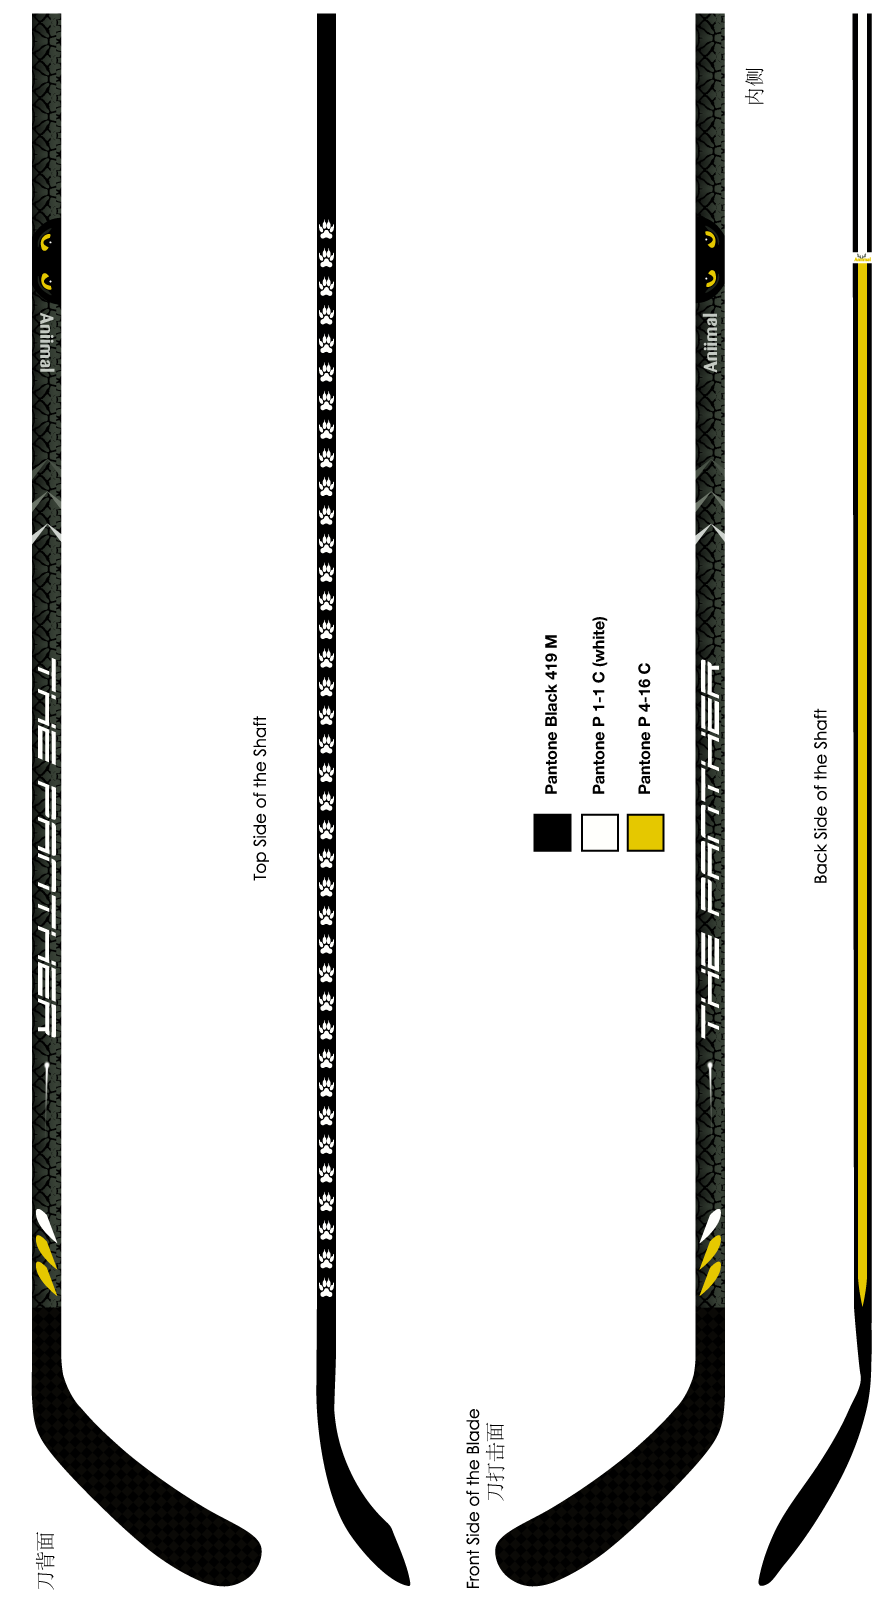 The Panter Custom hockey sticks vertical view